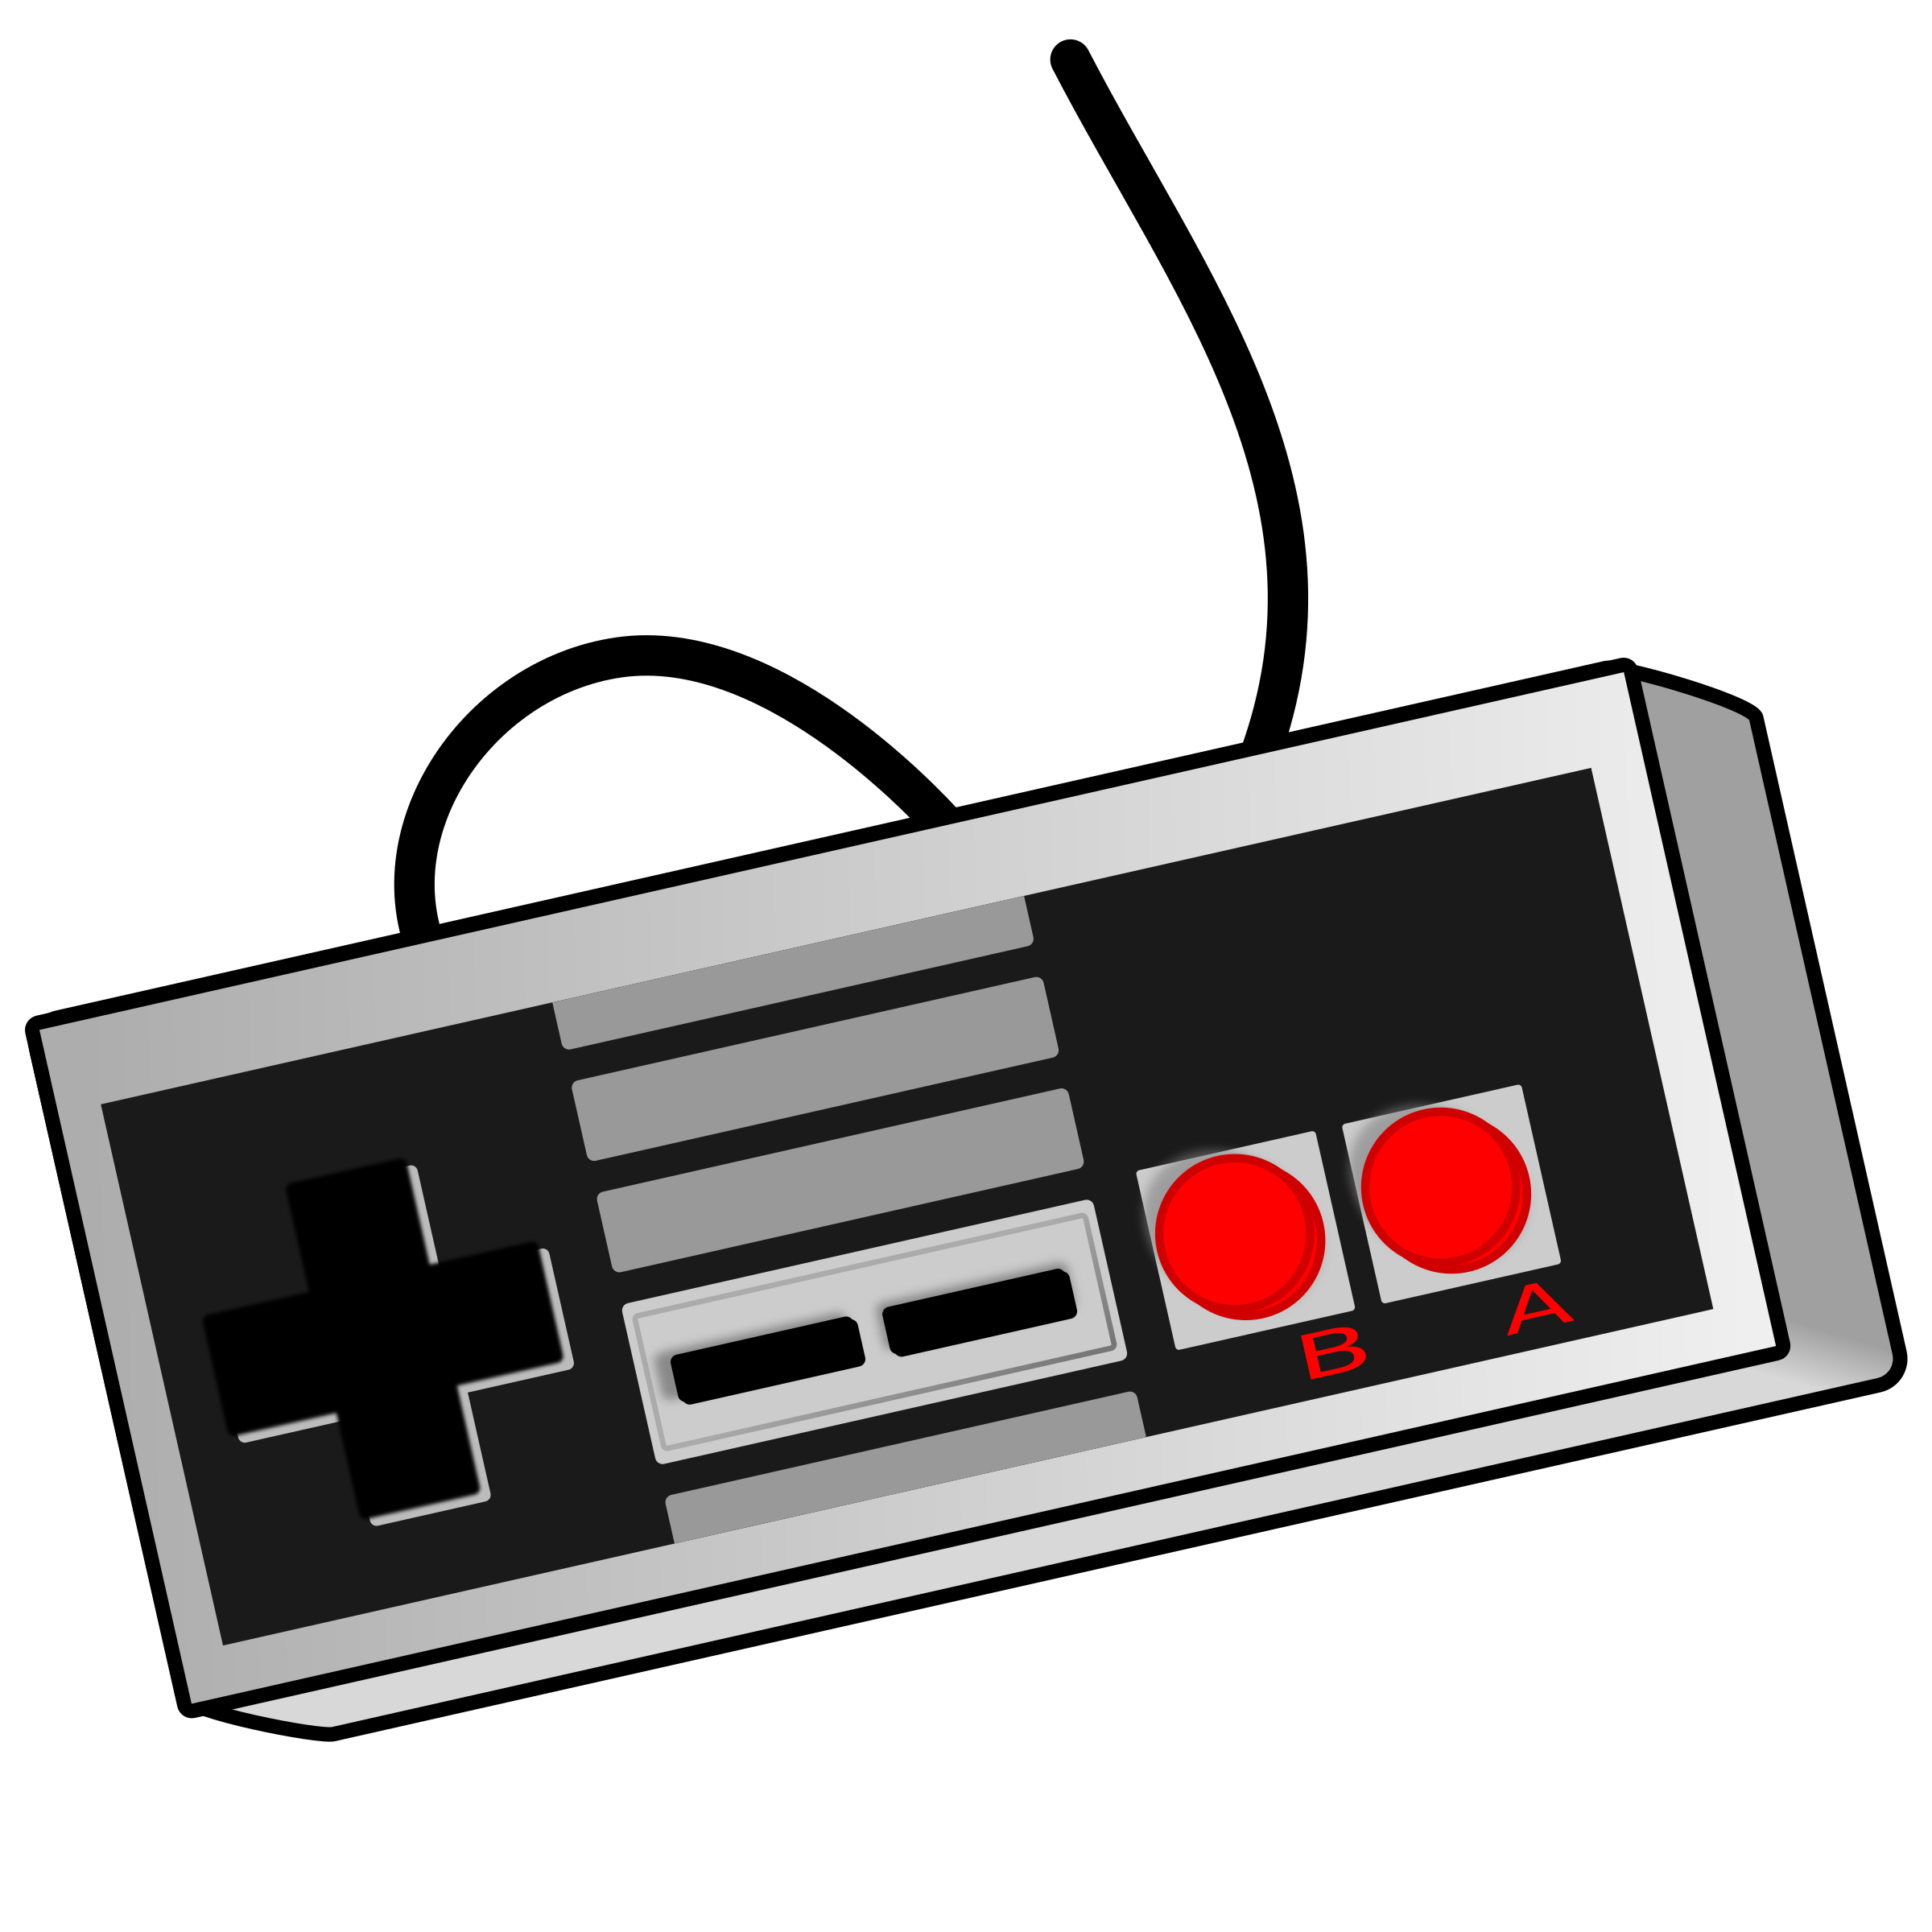 Game controllers clipart.